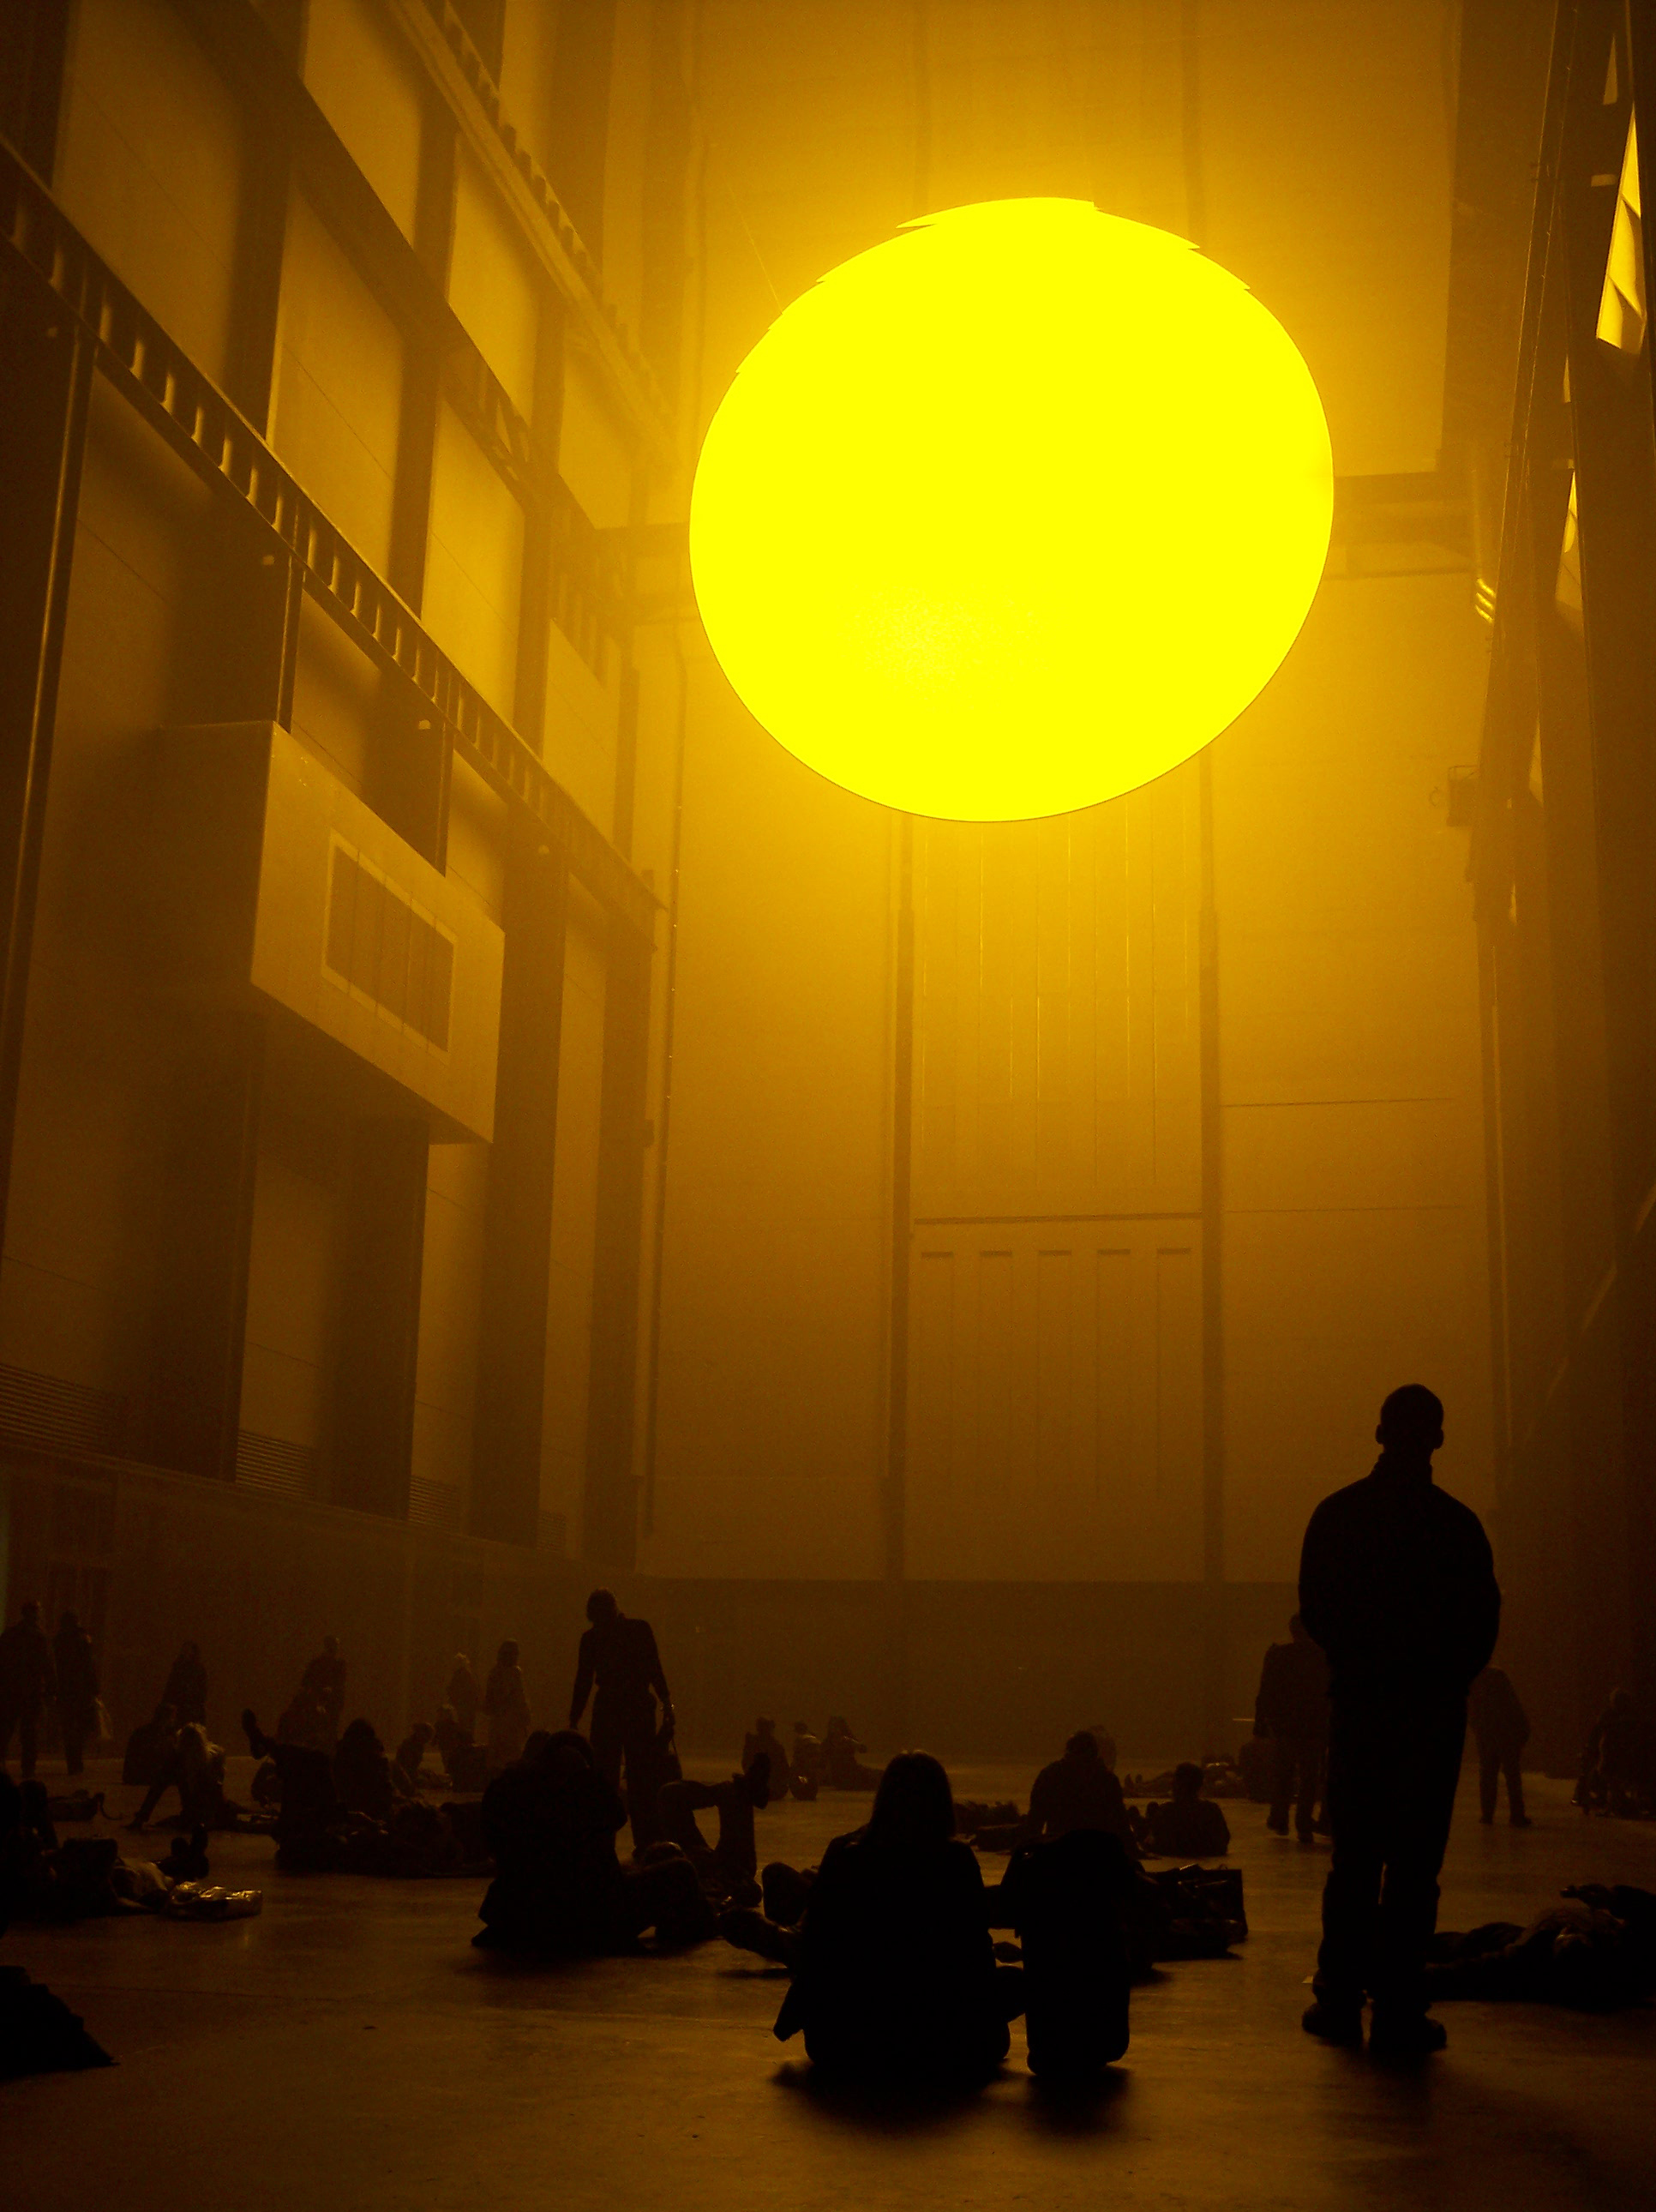 2004_01-08_Olafur-Eliasson_The-Weather-Project-[Tate-Modern]_13_Photograph_James-Bulley.jpg